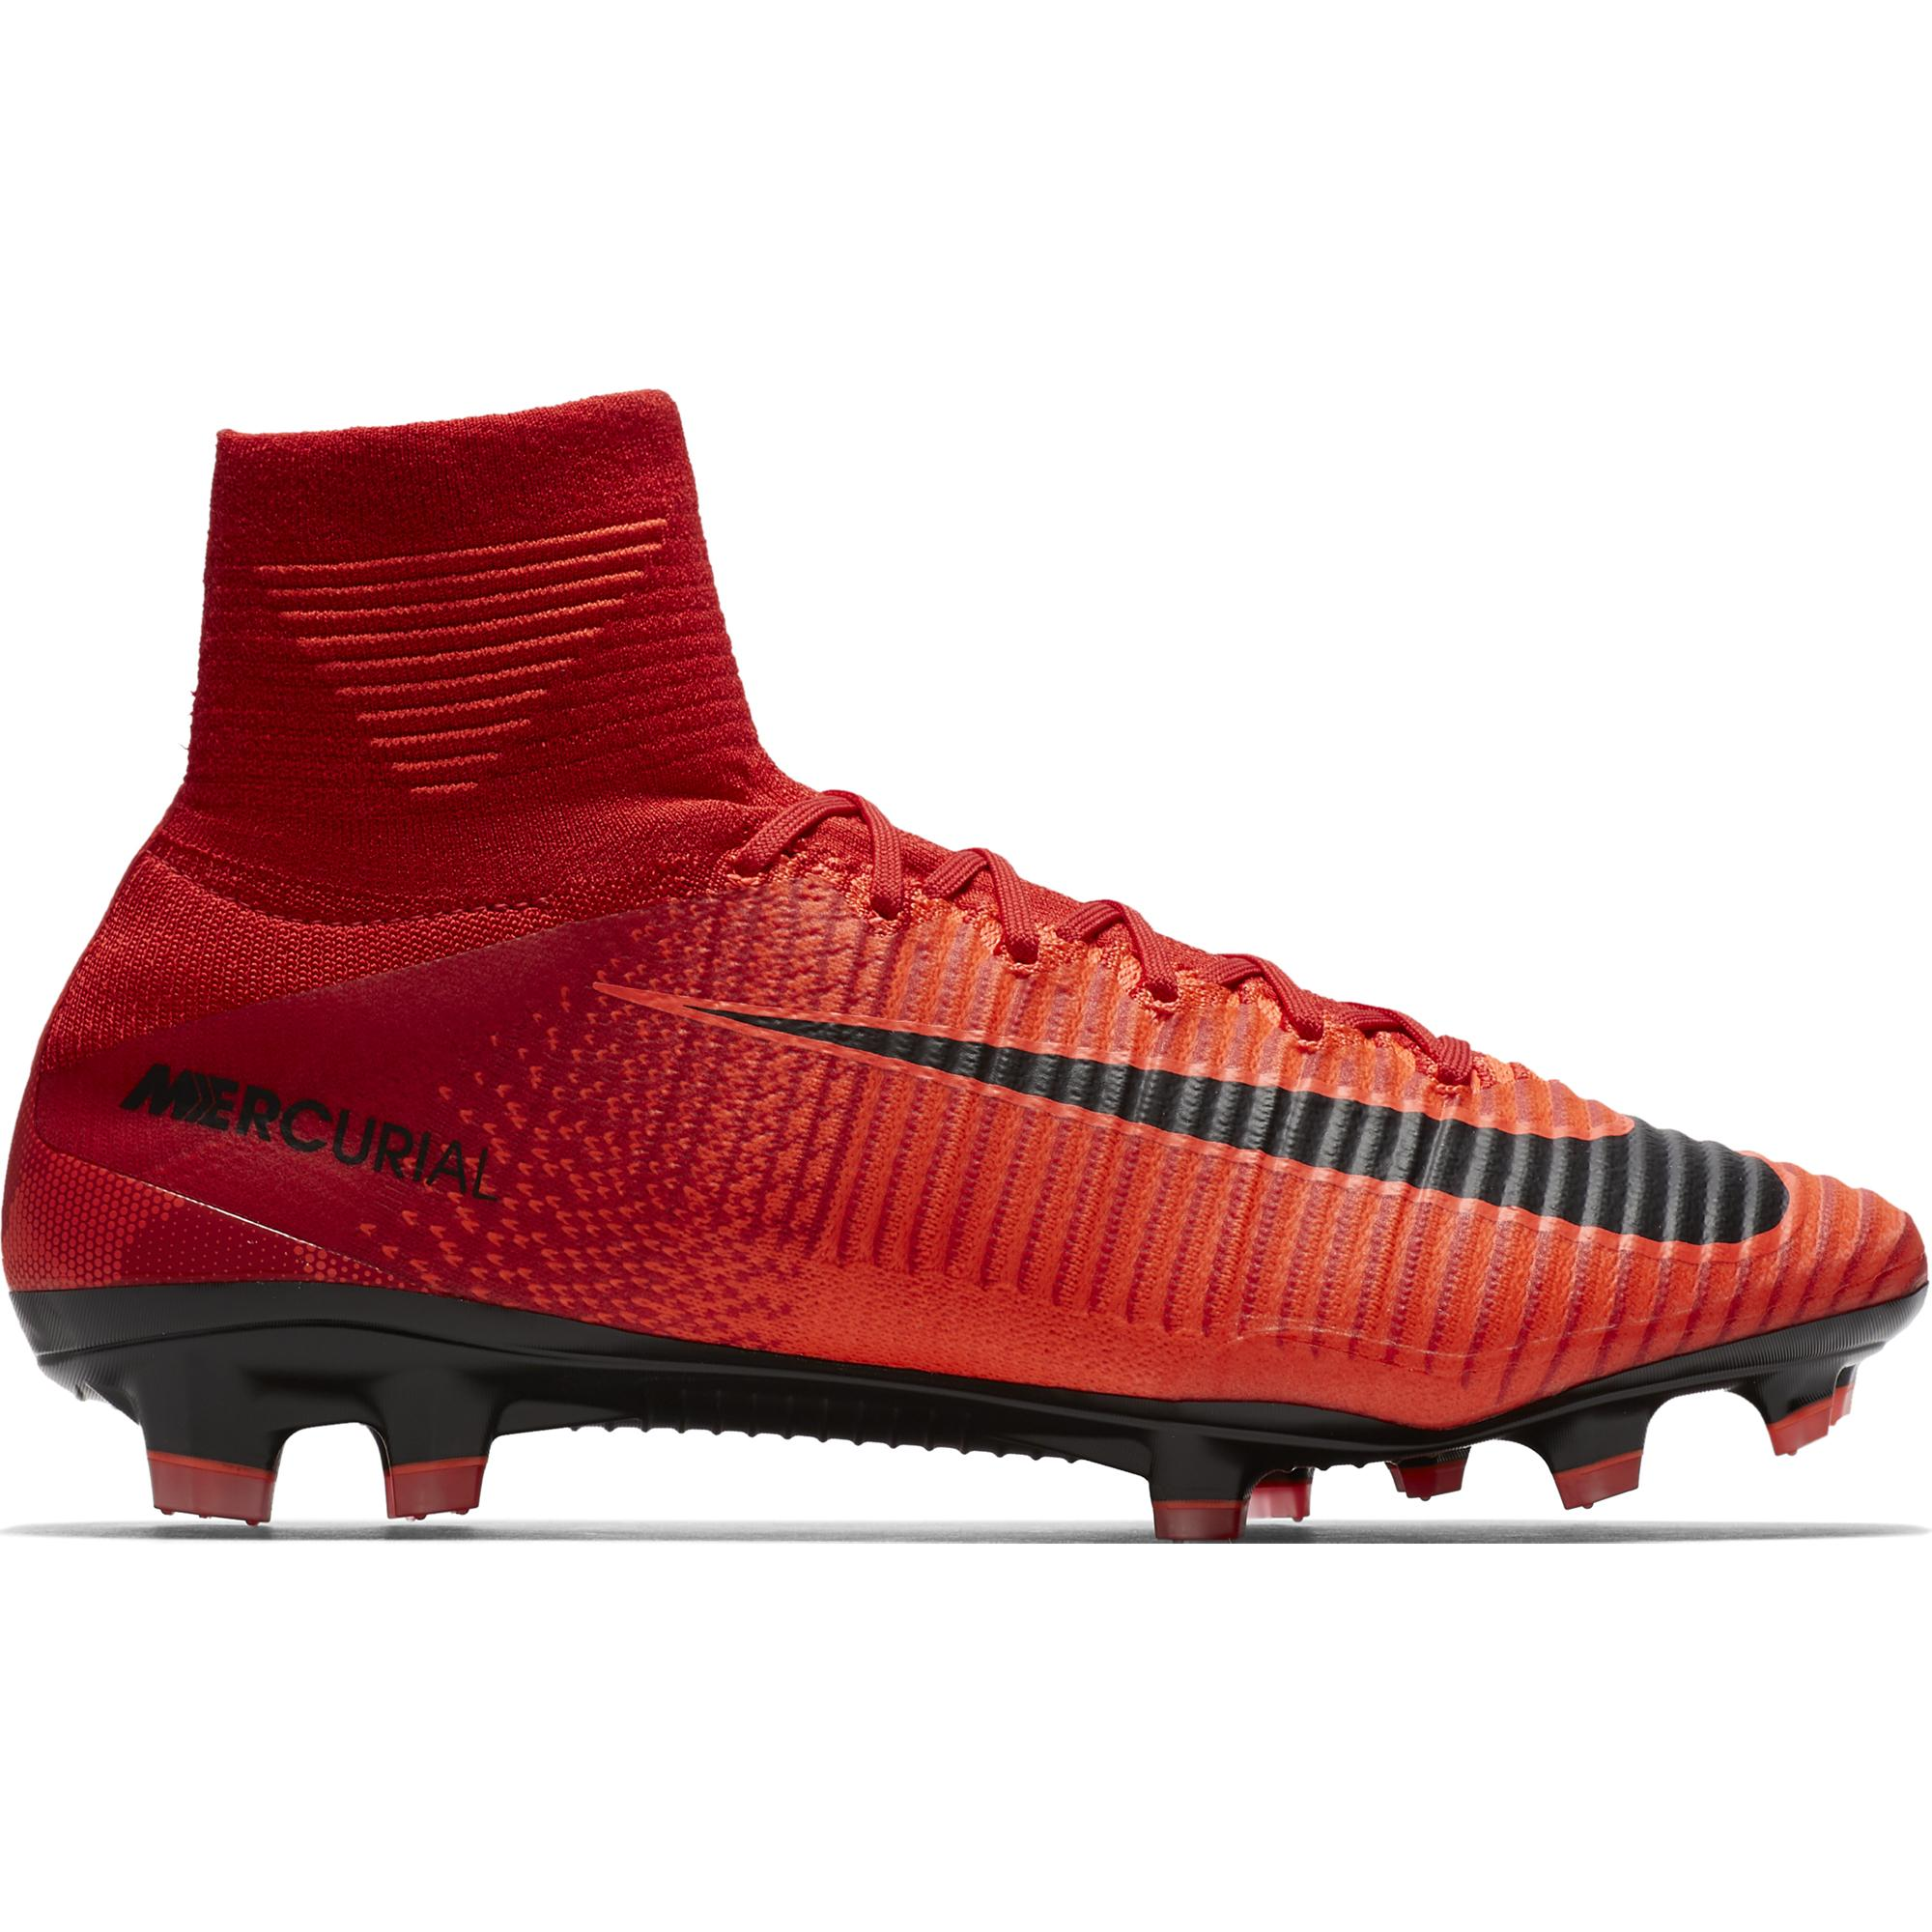 quality design 6abe5 d4342 Nike Football Shoes Mercurial Superfly V Fg University Redblack-bright  Crimson - Tifoshop.com